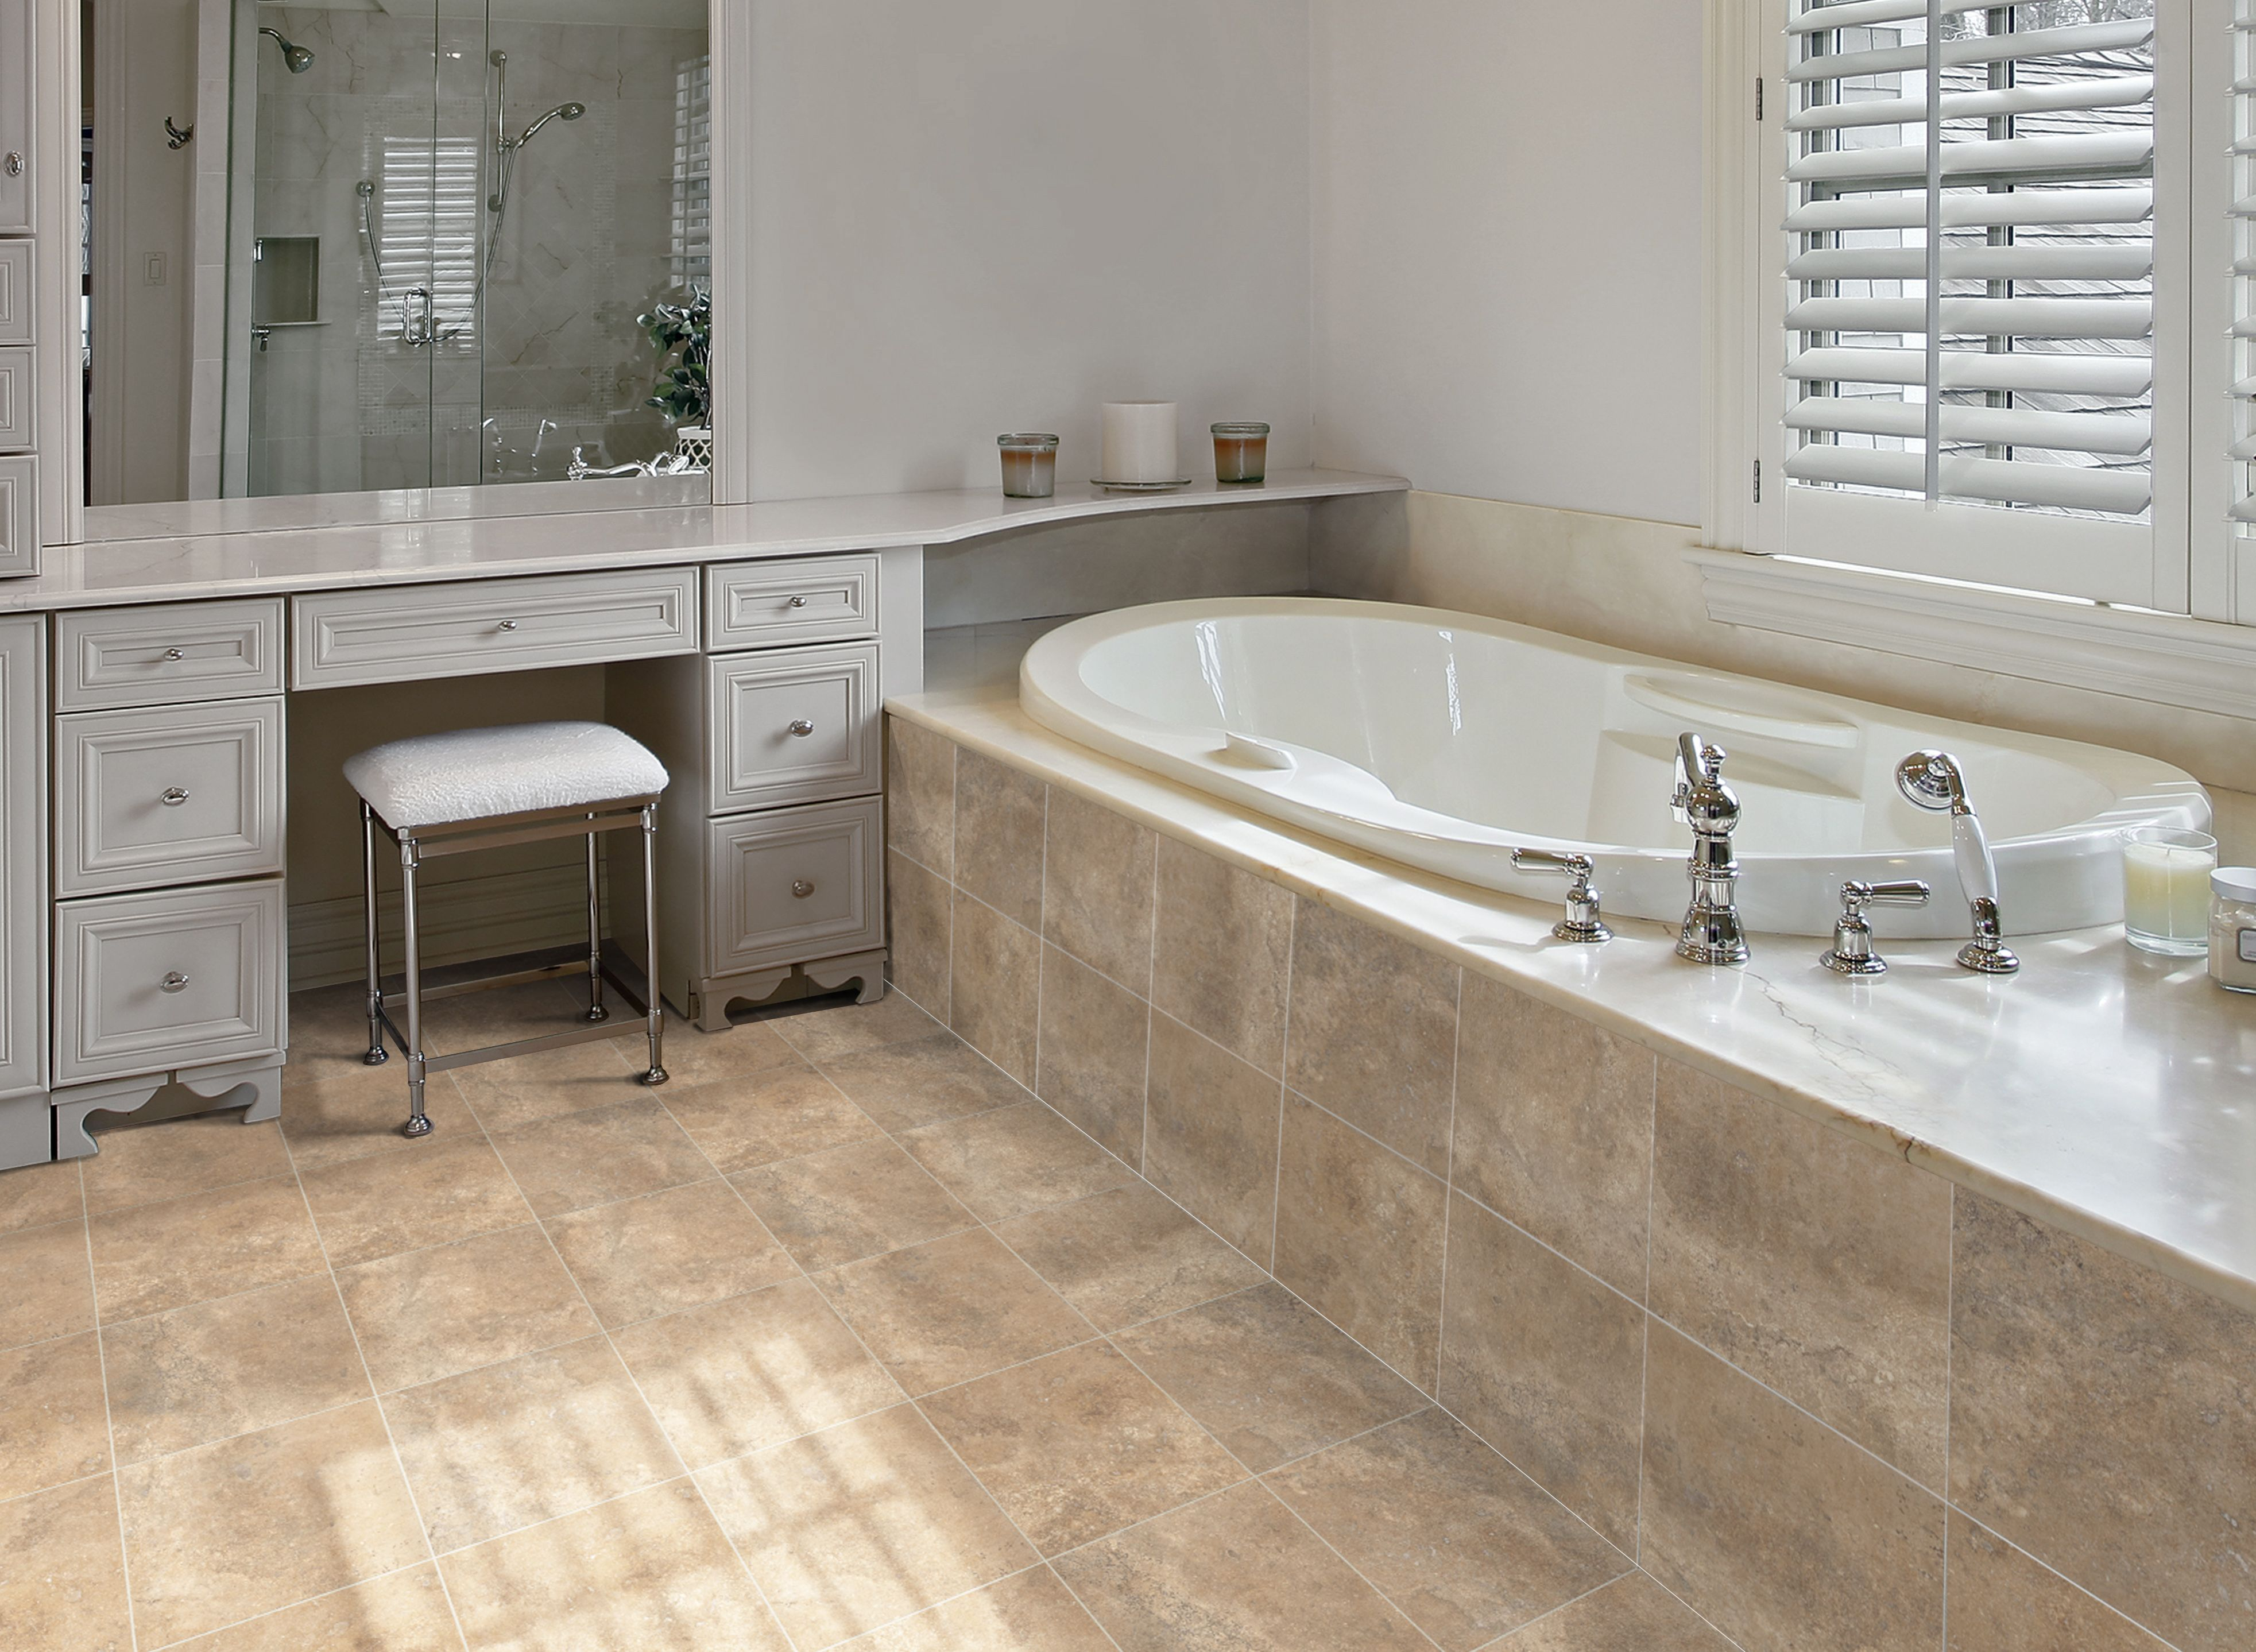 This agrippa noce tiled bathroom is great agrippa noce this agrippa noce tiled bathroom is great dailygadgetfo Gallery